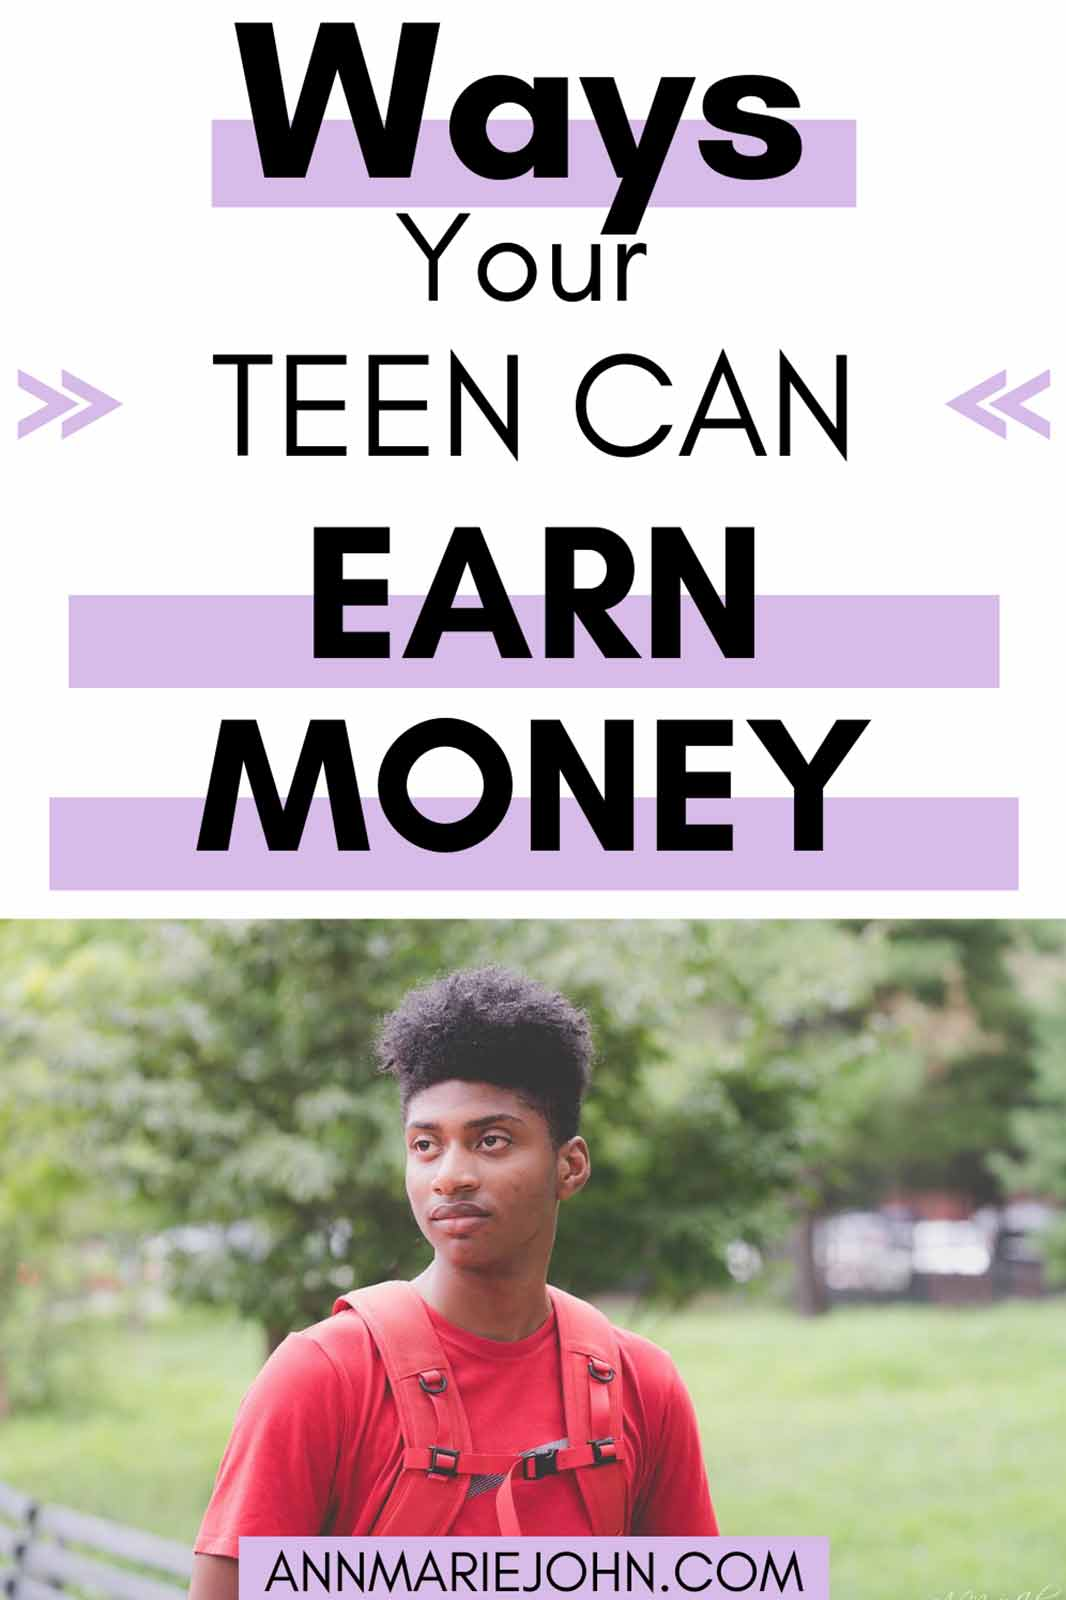 More Than Working in a Supermarket: Ways Your Teen Can Easily Earn Money